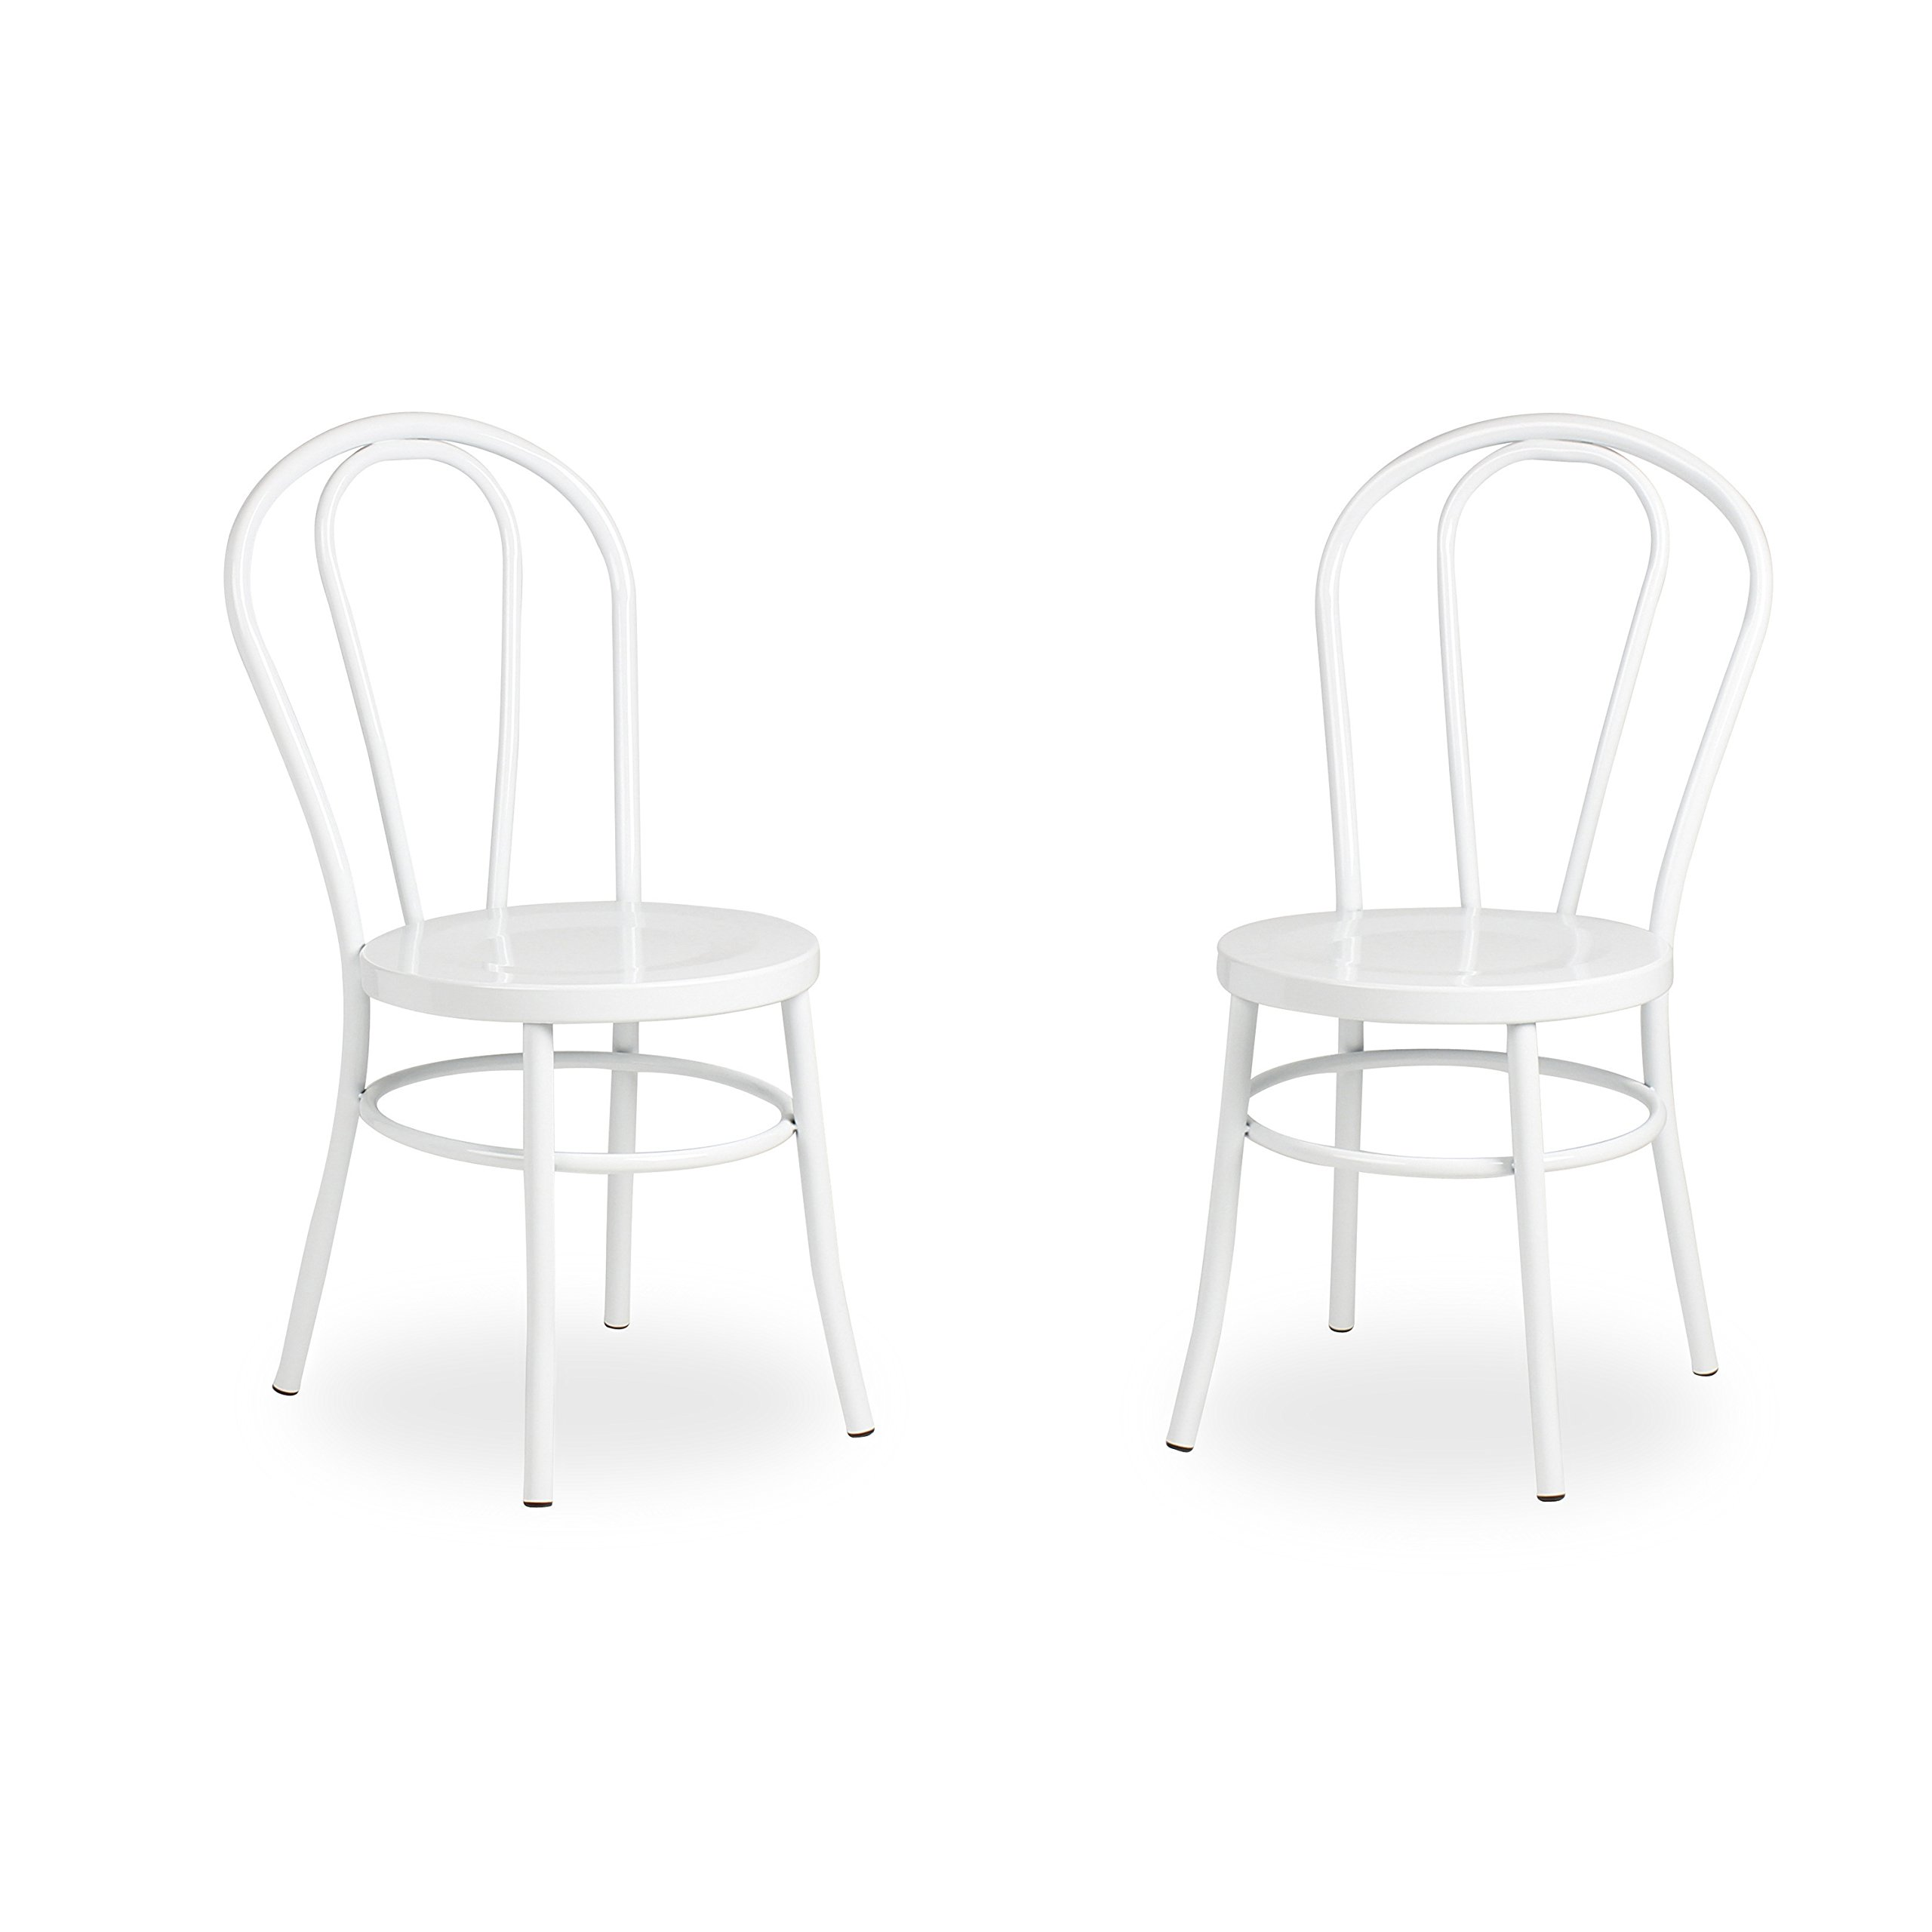 Kate and Laurel Twain Vintage Modern Metal Accent Dining Chairs, Set of 2, White